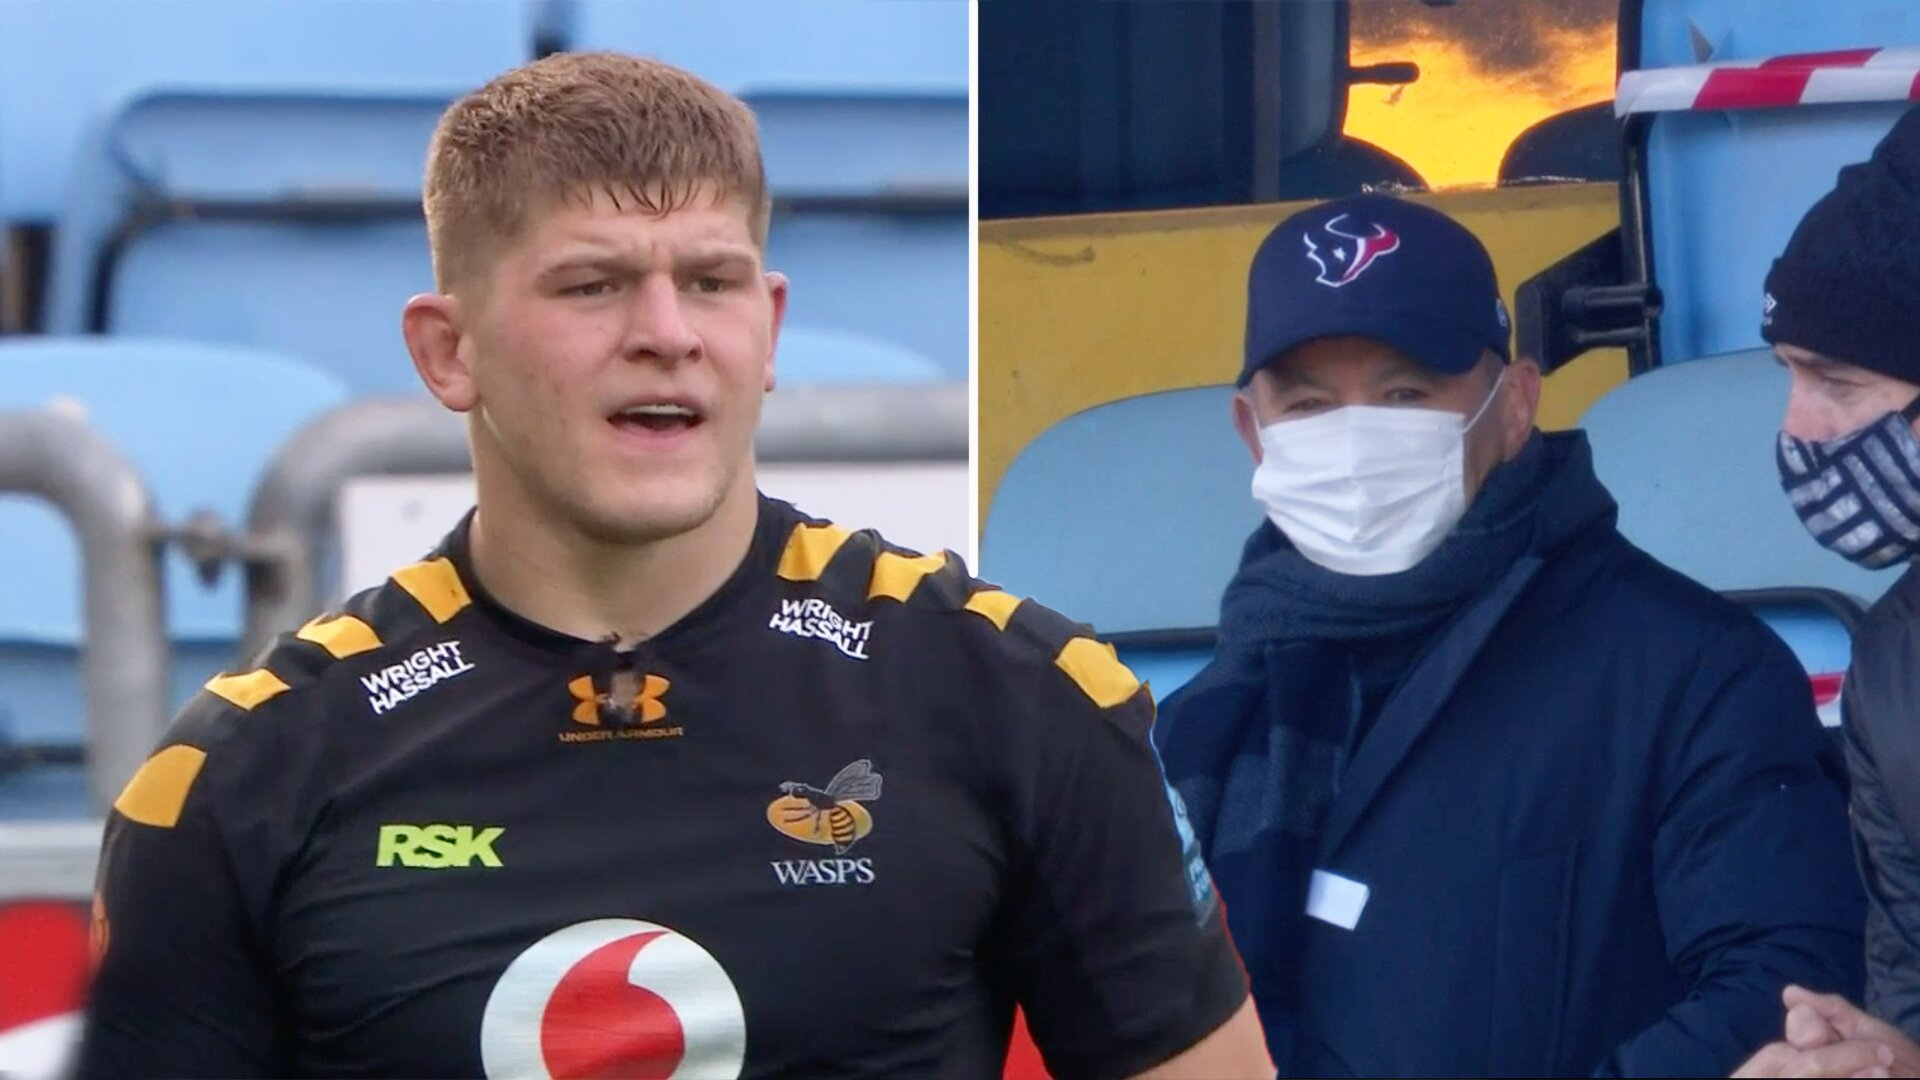 Fans are raving over Jack Willis after another sensational performance as Wasps destroy Bristol